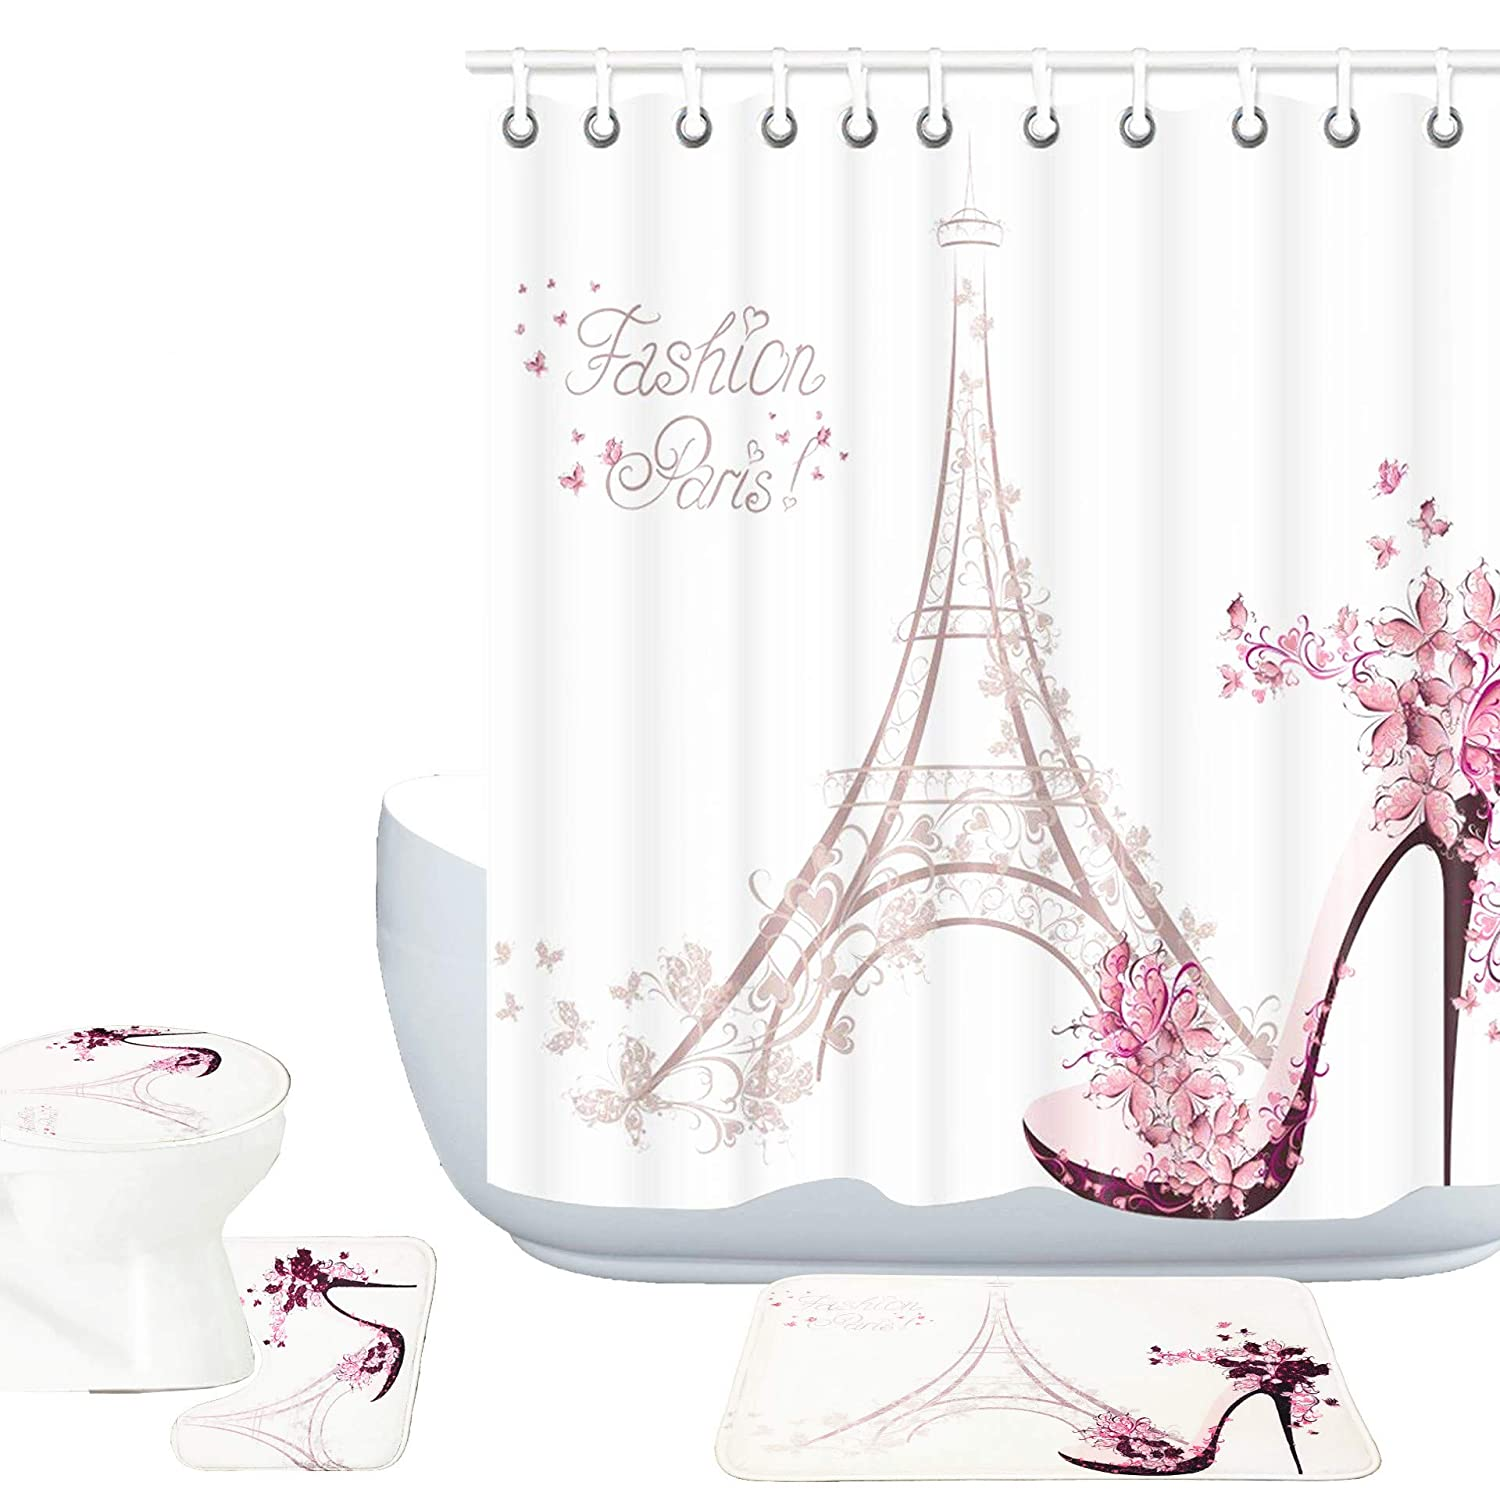 Amagical Paris Eiffel Tower Decor 16 Piece Bathroom Mat Rug Set Shower Curtainn Set High Heeled Shoes and Pink Flower in Paris Pattern Bath Mat + Contour Mat + Toilet Cover + Shower Curtain + 12 Hooks